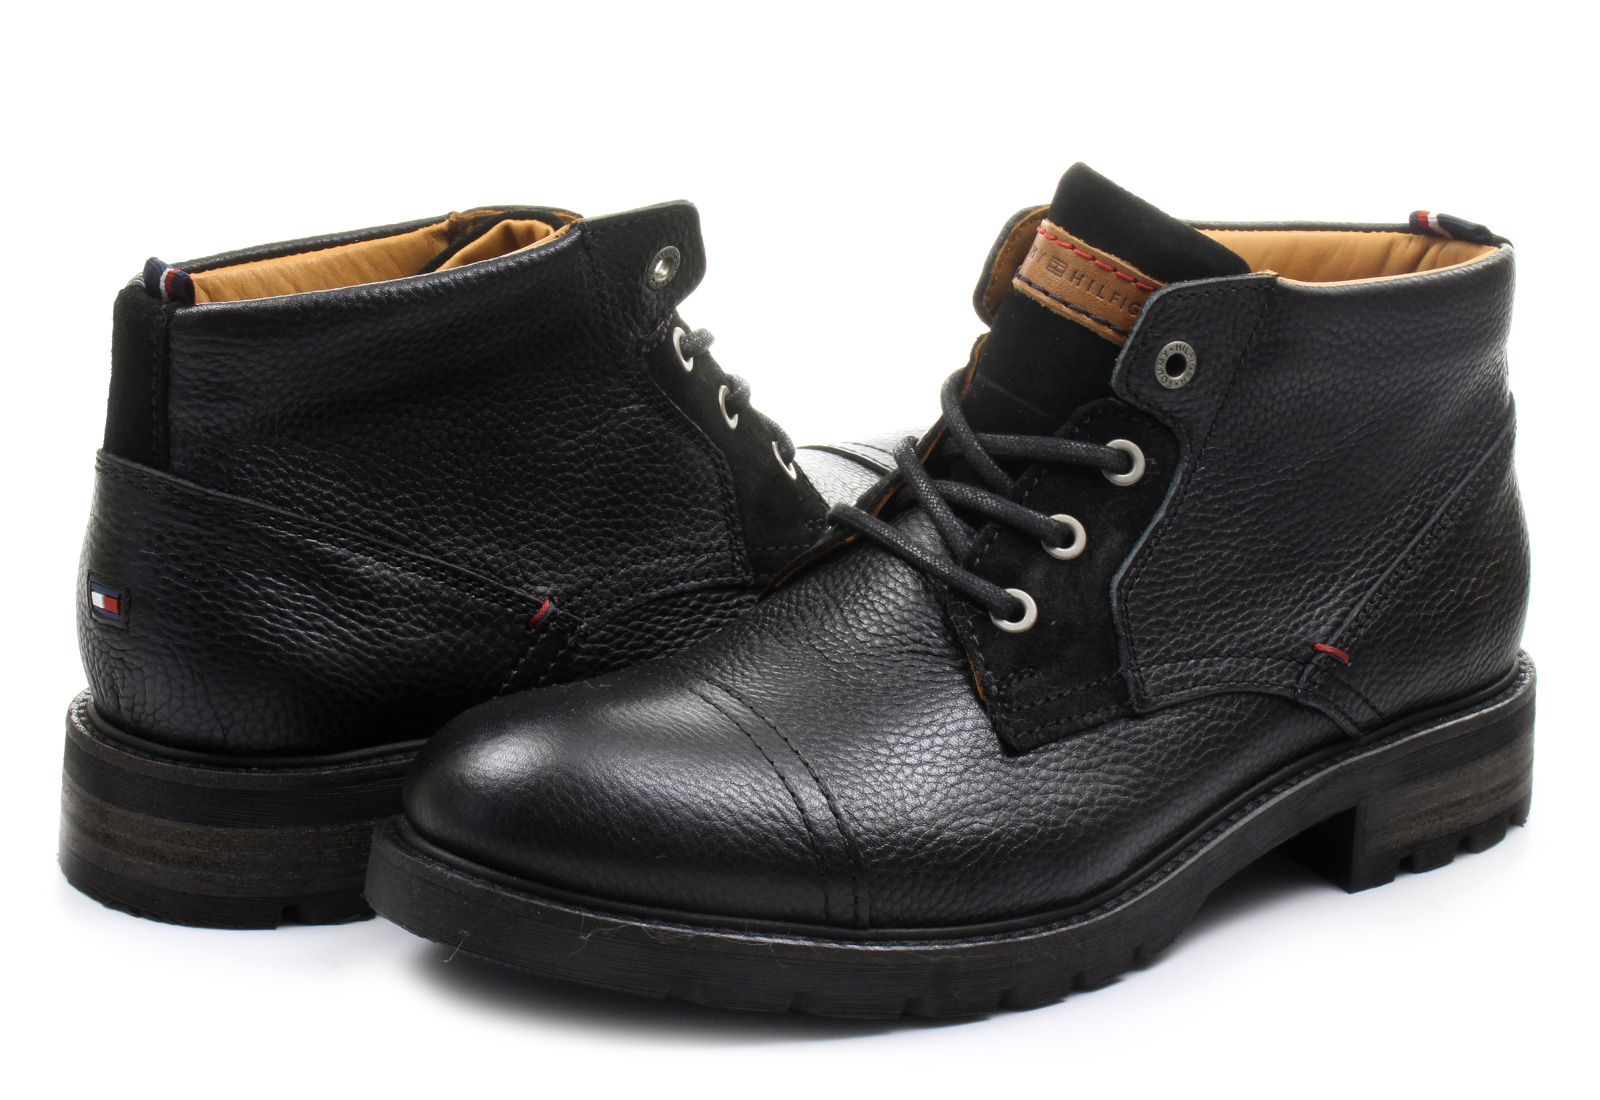 tommy hilfiger boots curtis 5a 15f 9595 990 online shop for sneakers shoes and boots. Black Bedroom Furniture Sets. Home Design Ideas